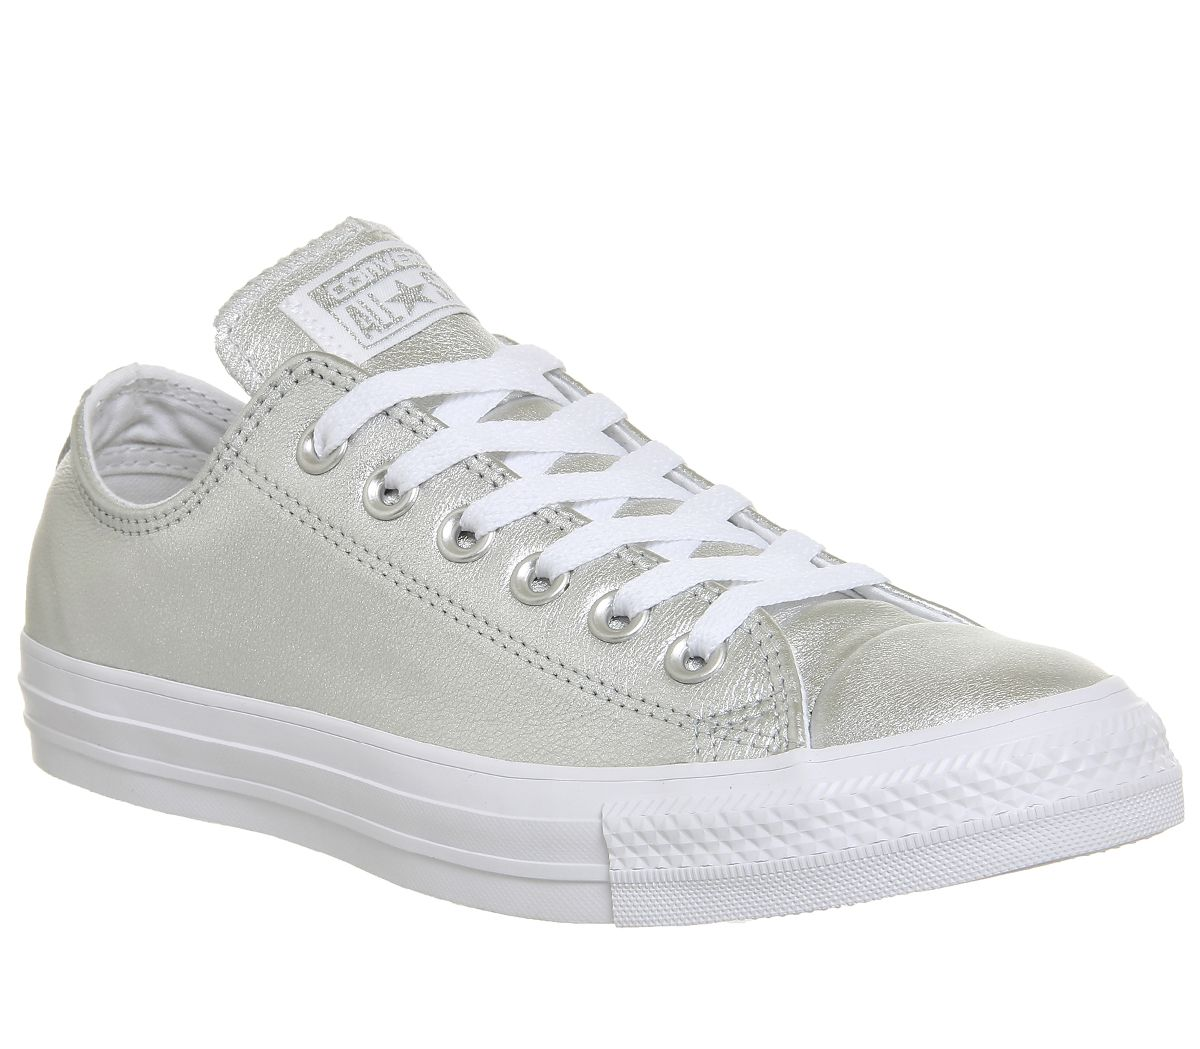 4f13df506002 Converse All Star Low Leather Pure Silver White - Hers trainers